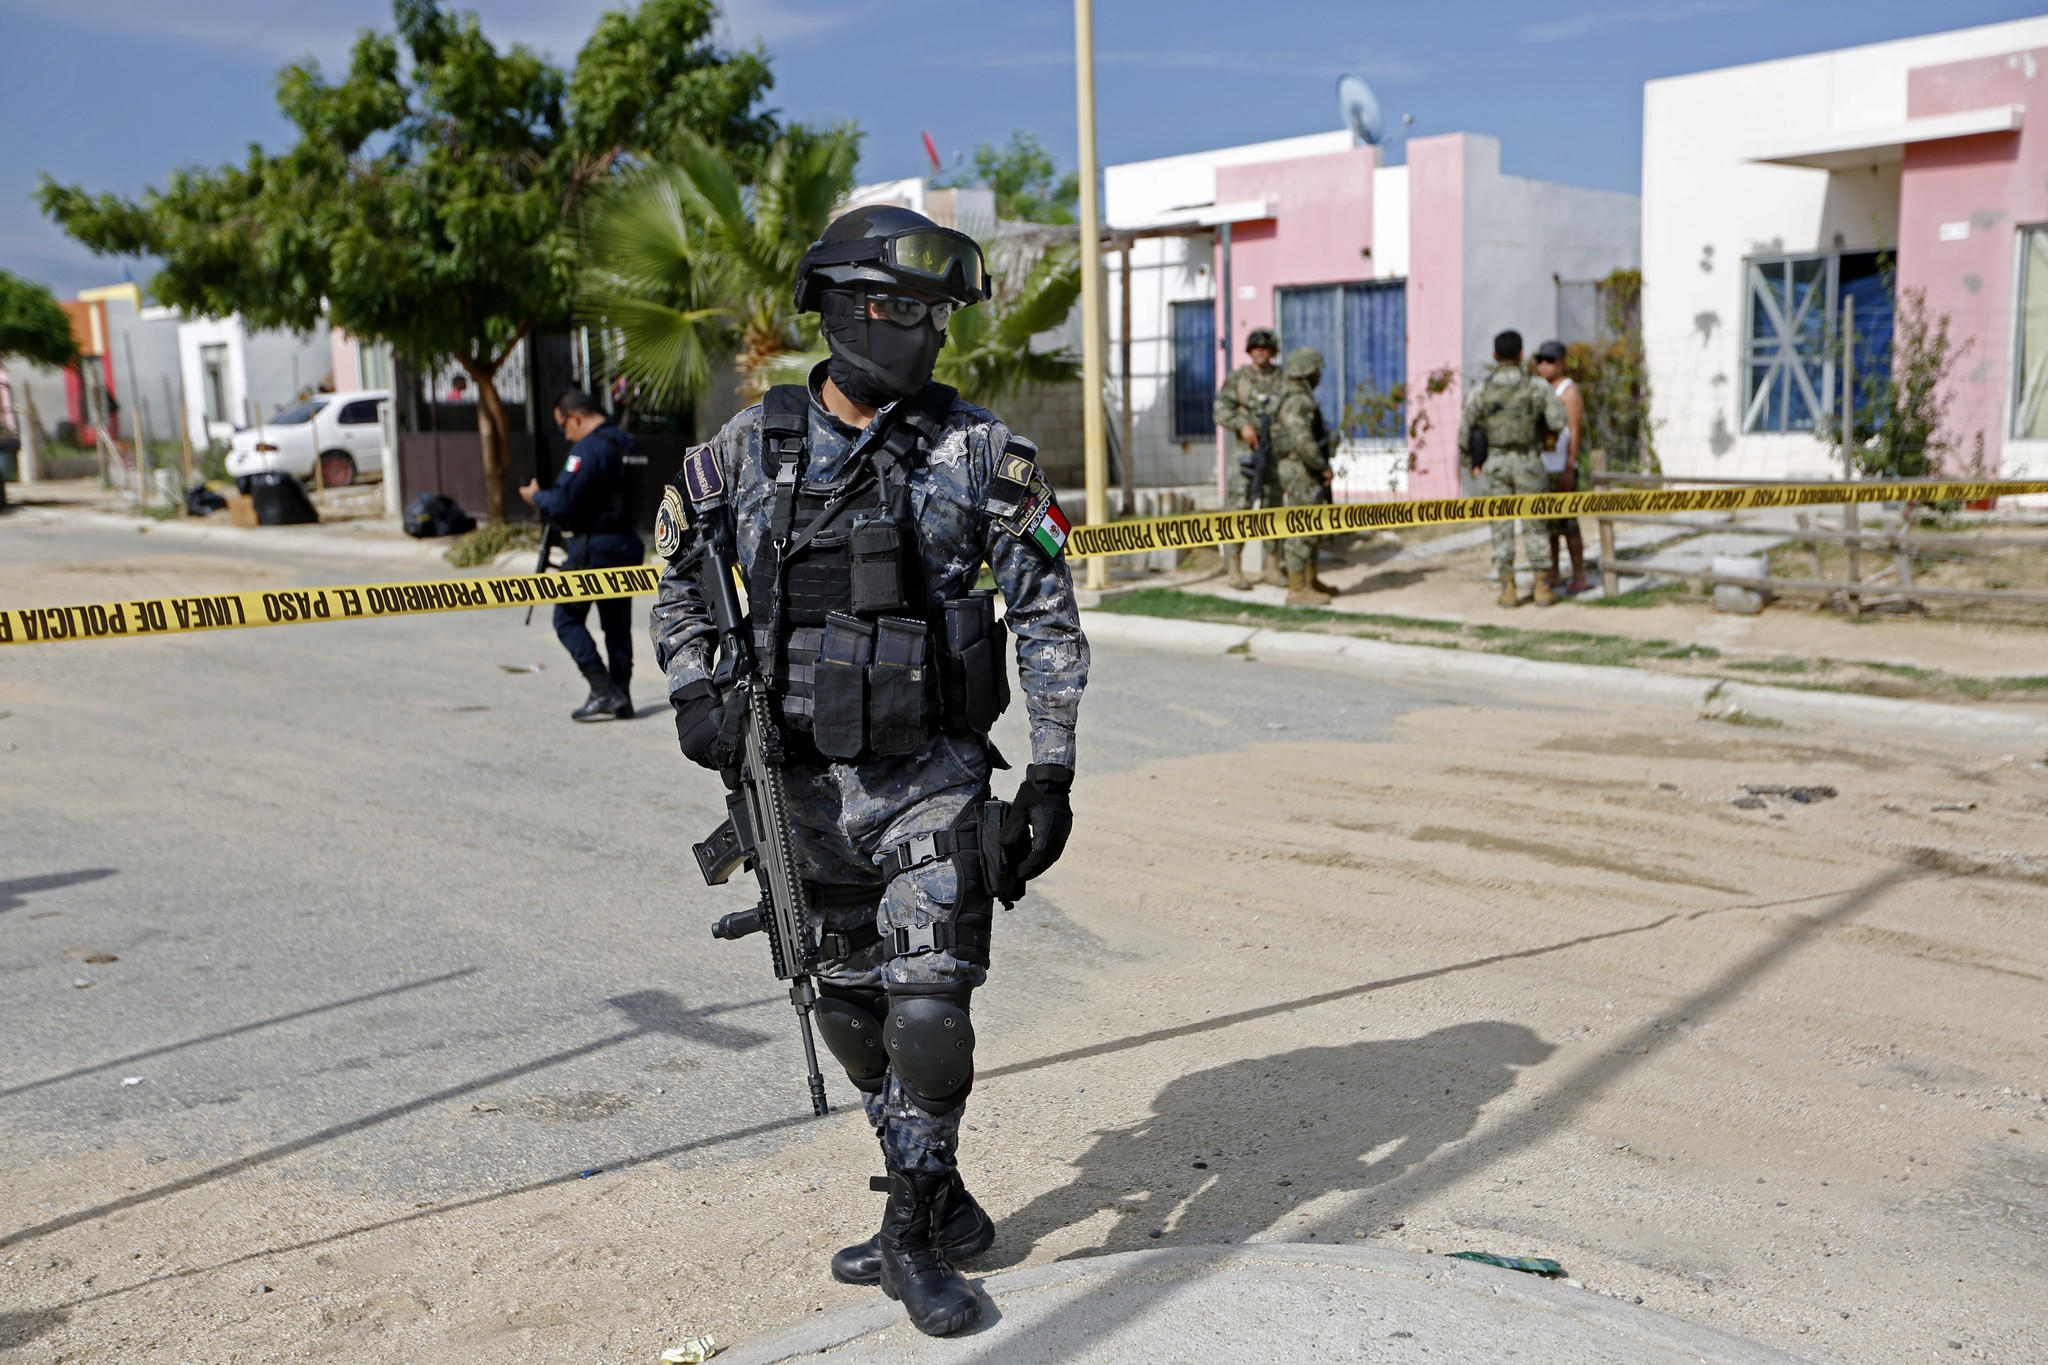 Los Cabos is no longer a haven from Mexico's bloodshed - Los